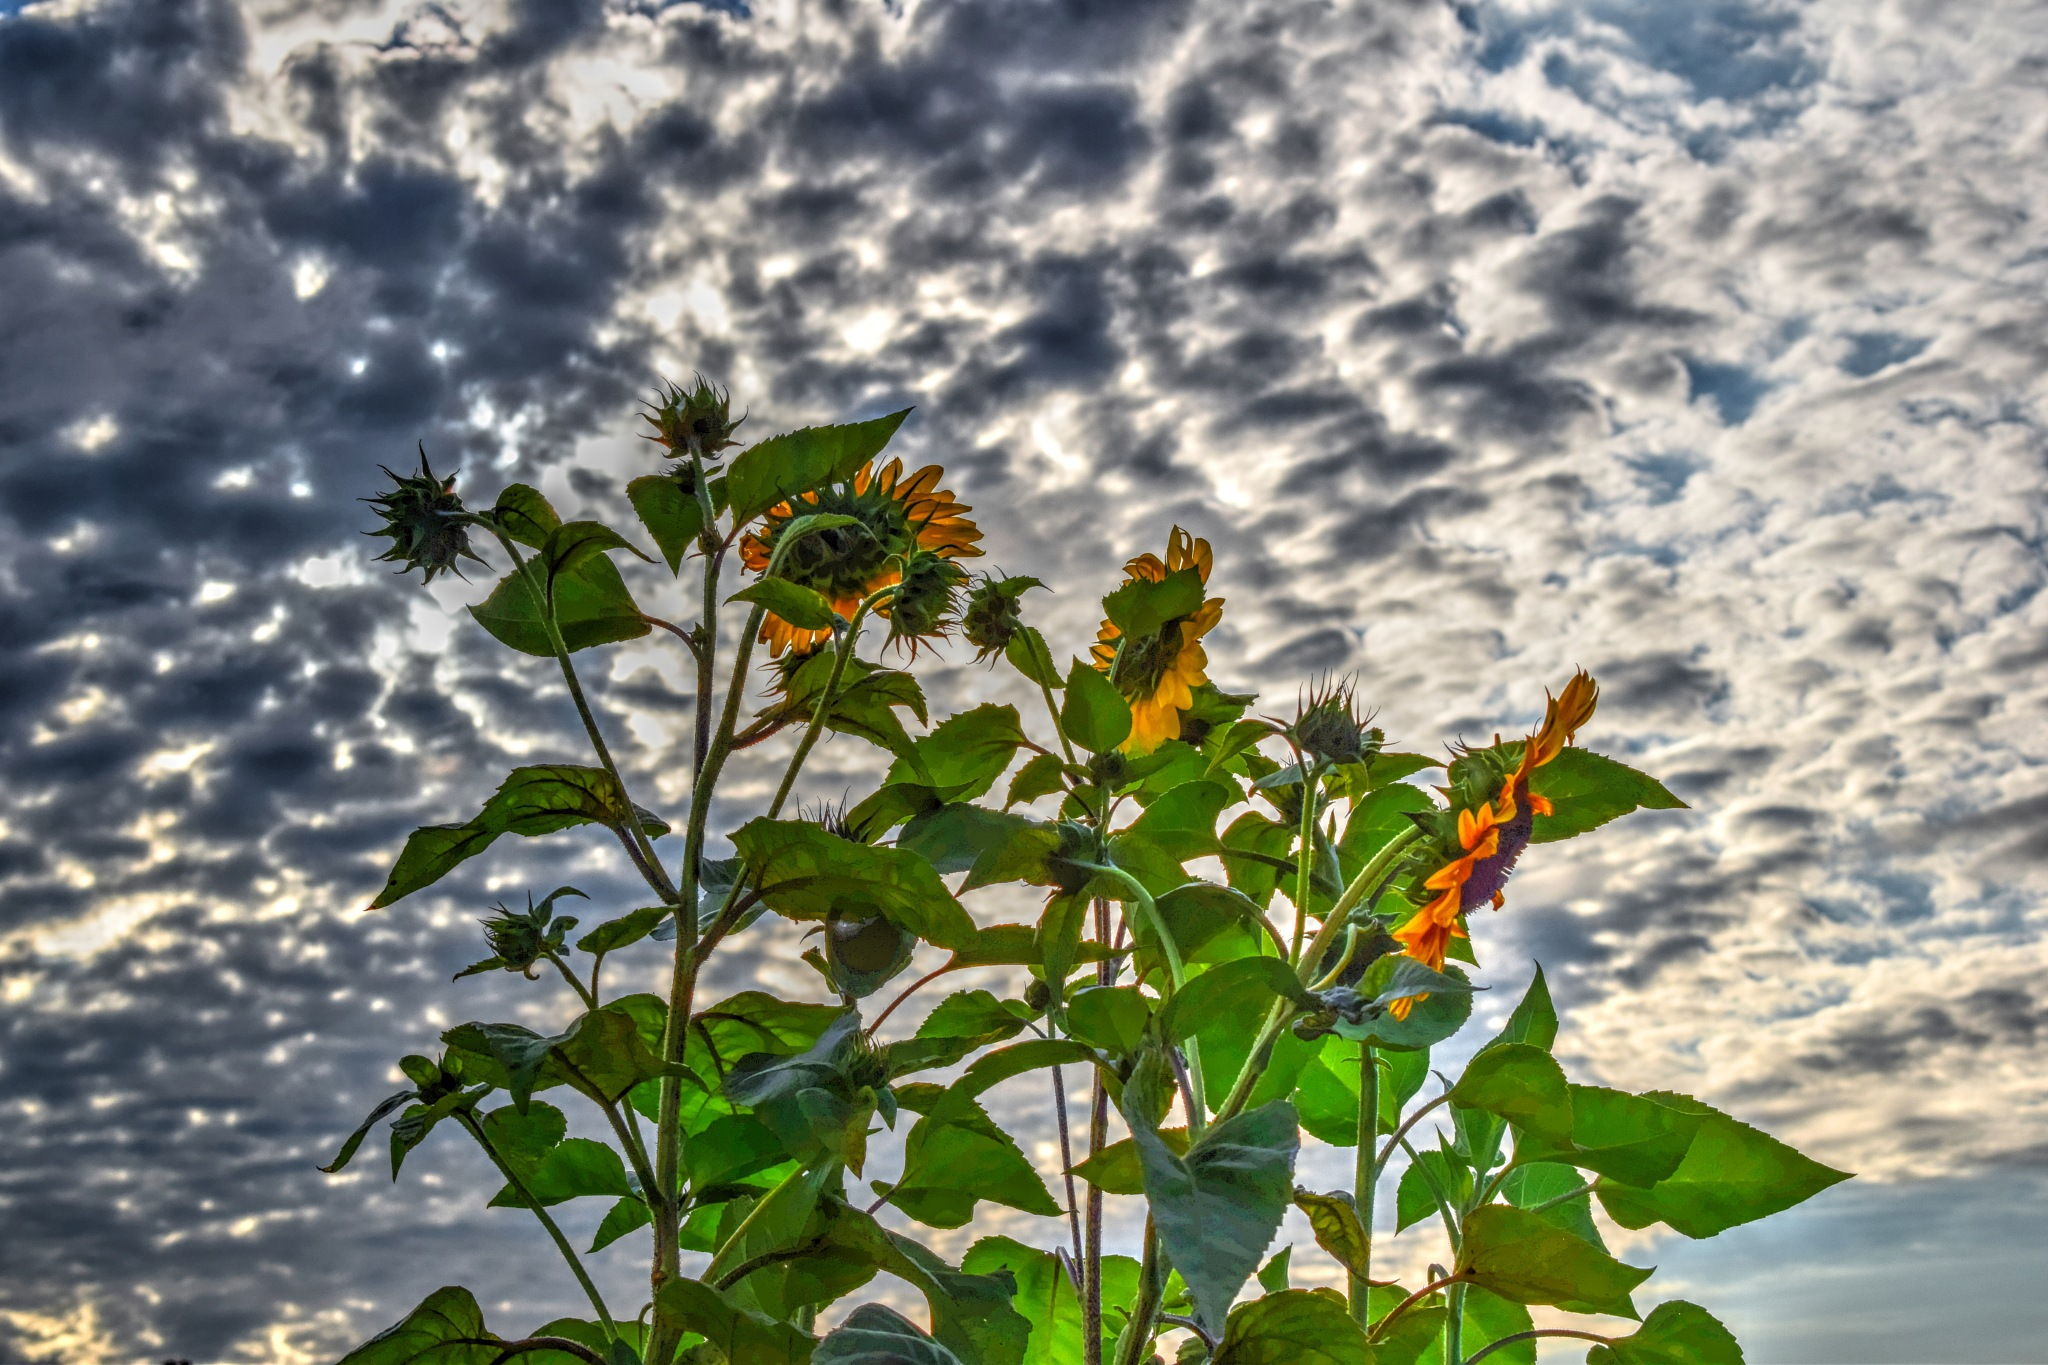 Sunflowers by Javorka